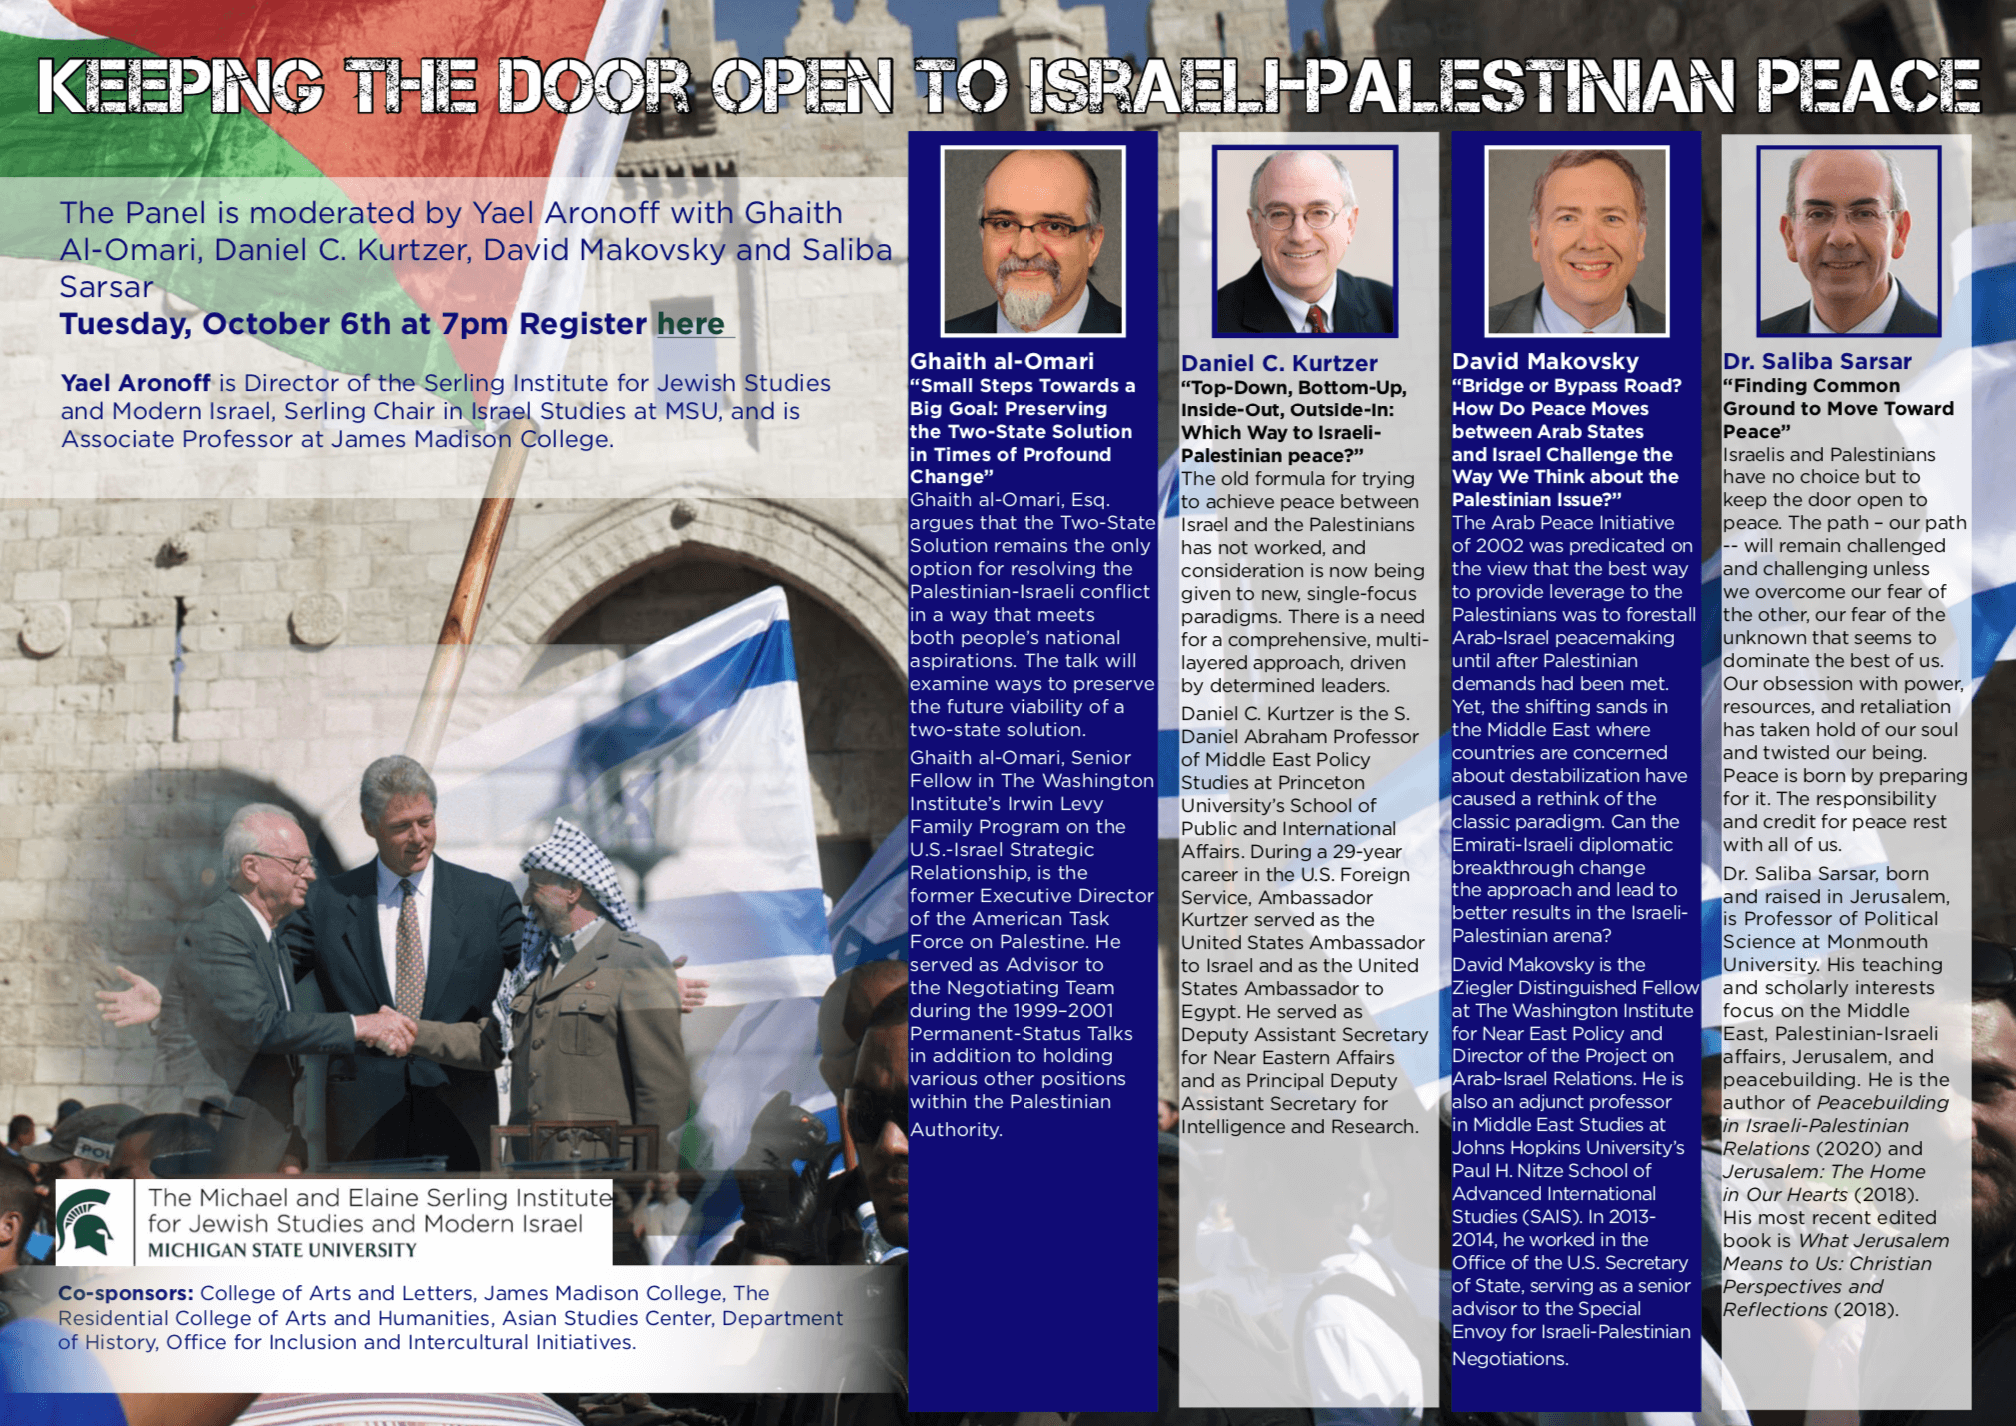 """Flyer image for panel discussion, """"Keeping the Door Open to Israeli-Palestinian Peace,"""" at Michigan State University on Oct. 6"""